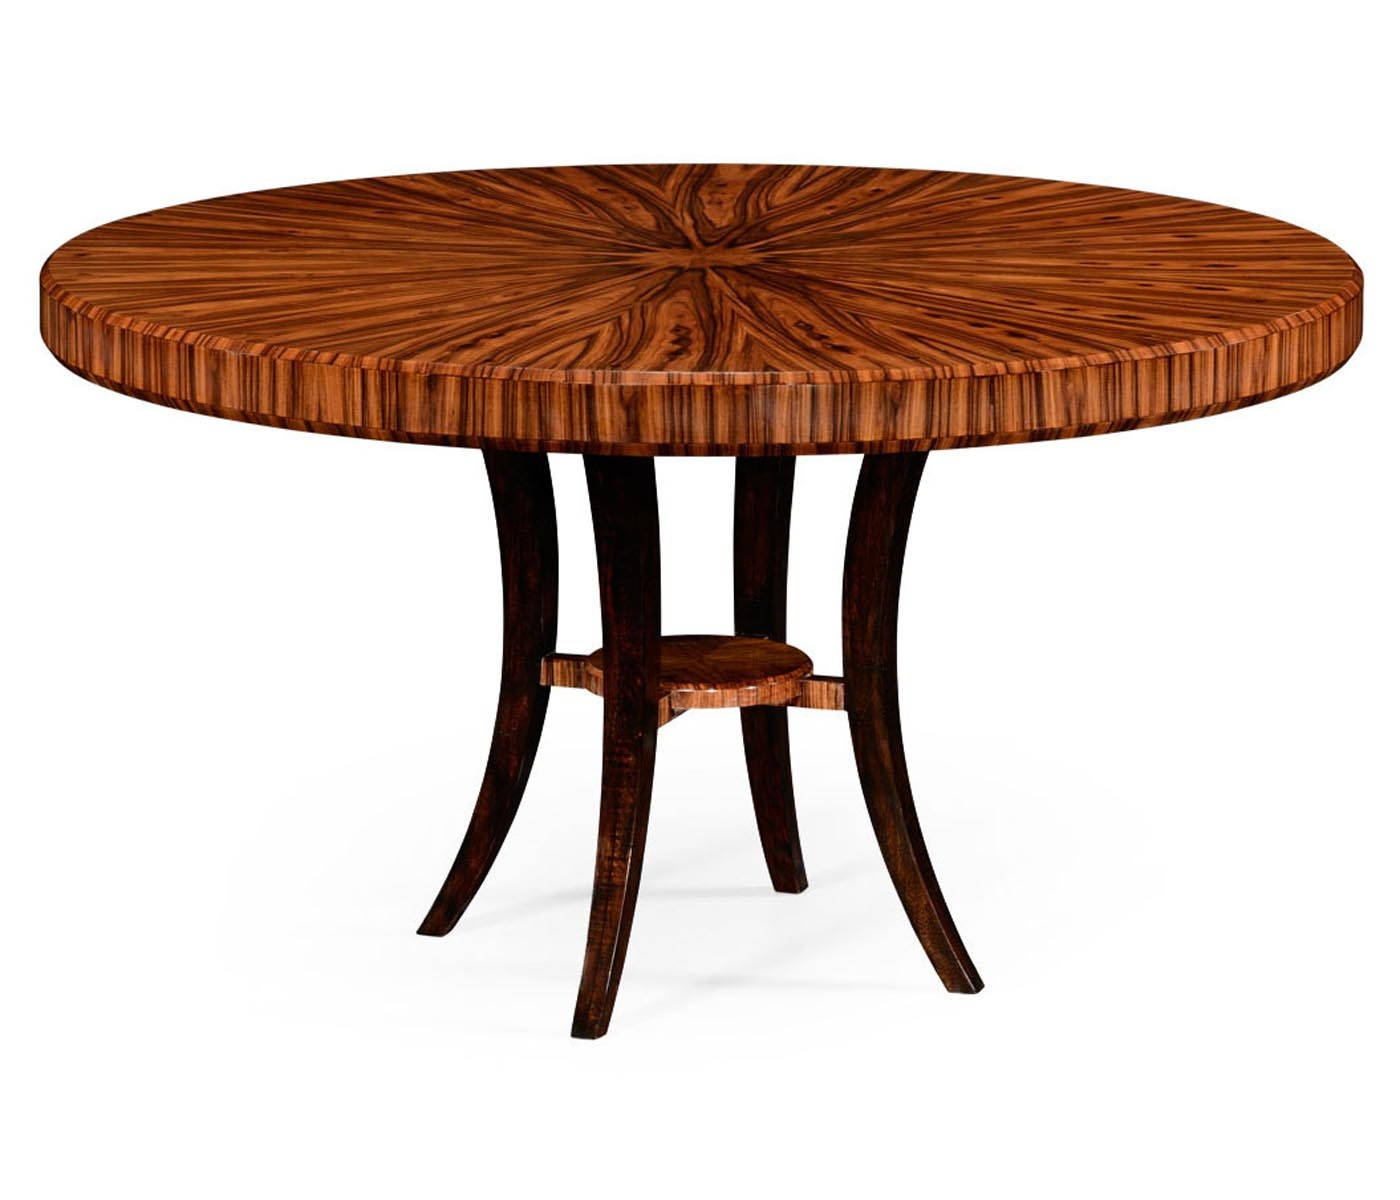 6 seater round dining table swanky interiors for Table circle